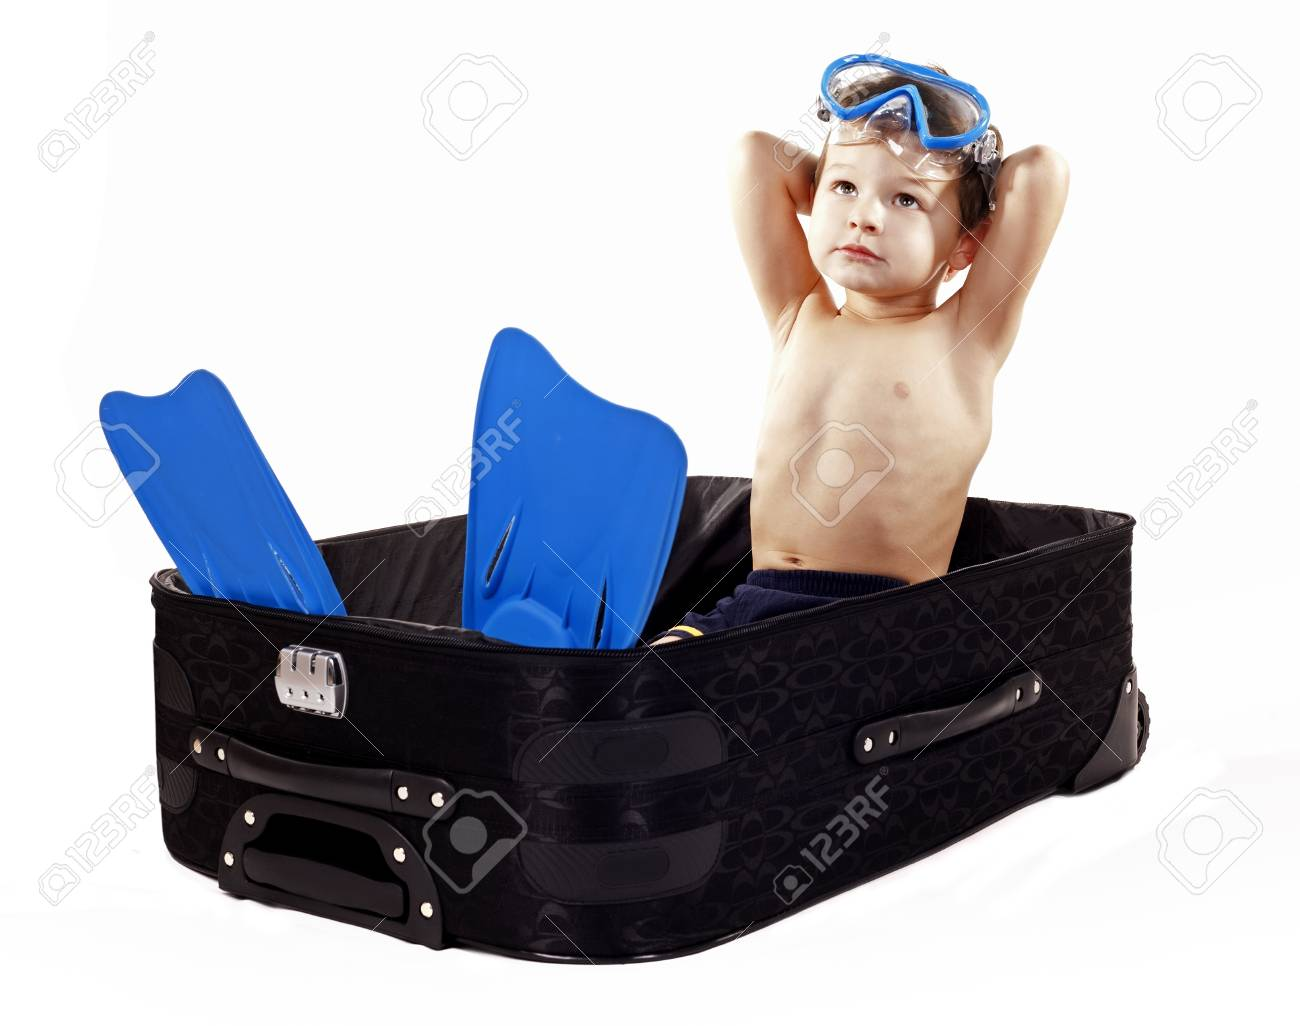 little boy sitting in the luggage wearing snorkel gear Stock Photo - 16878811